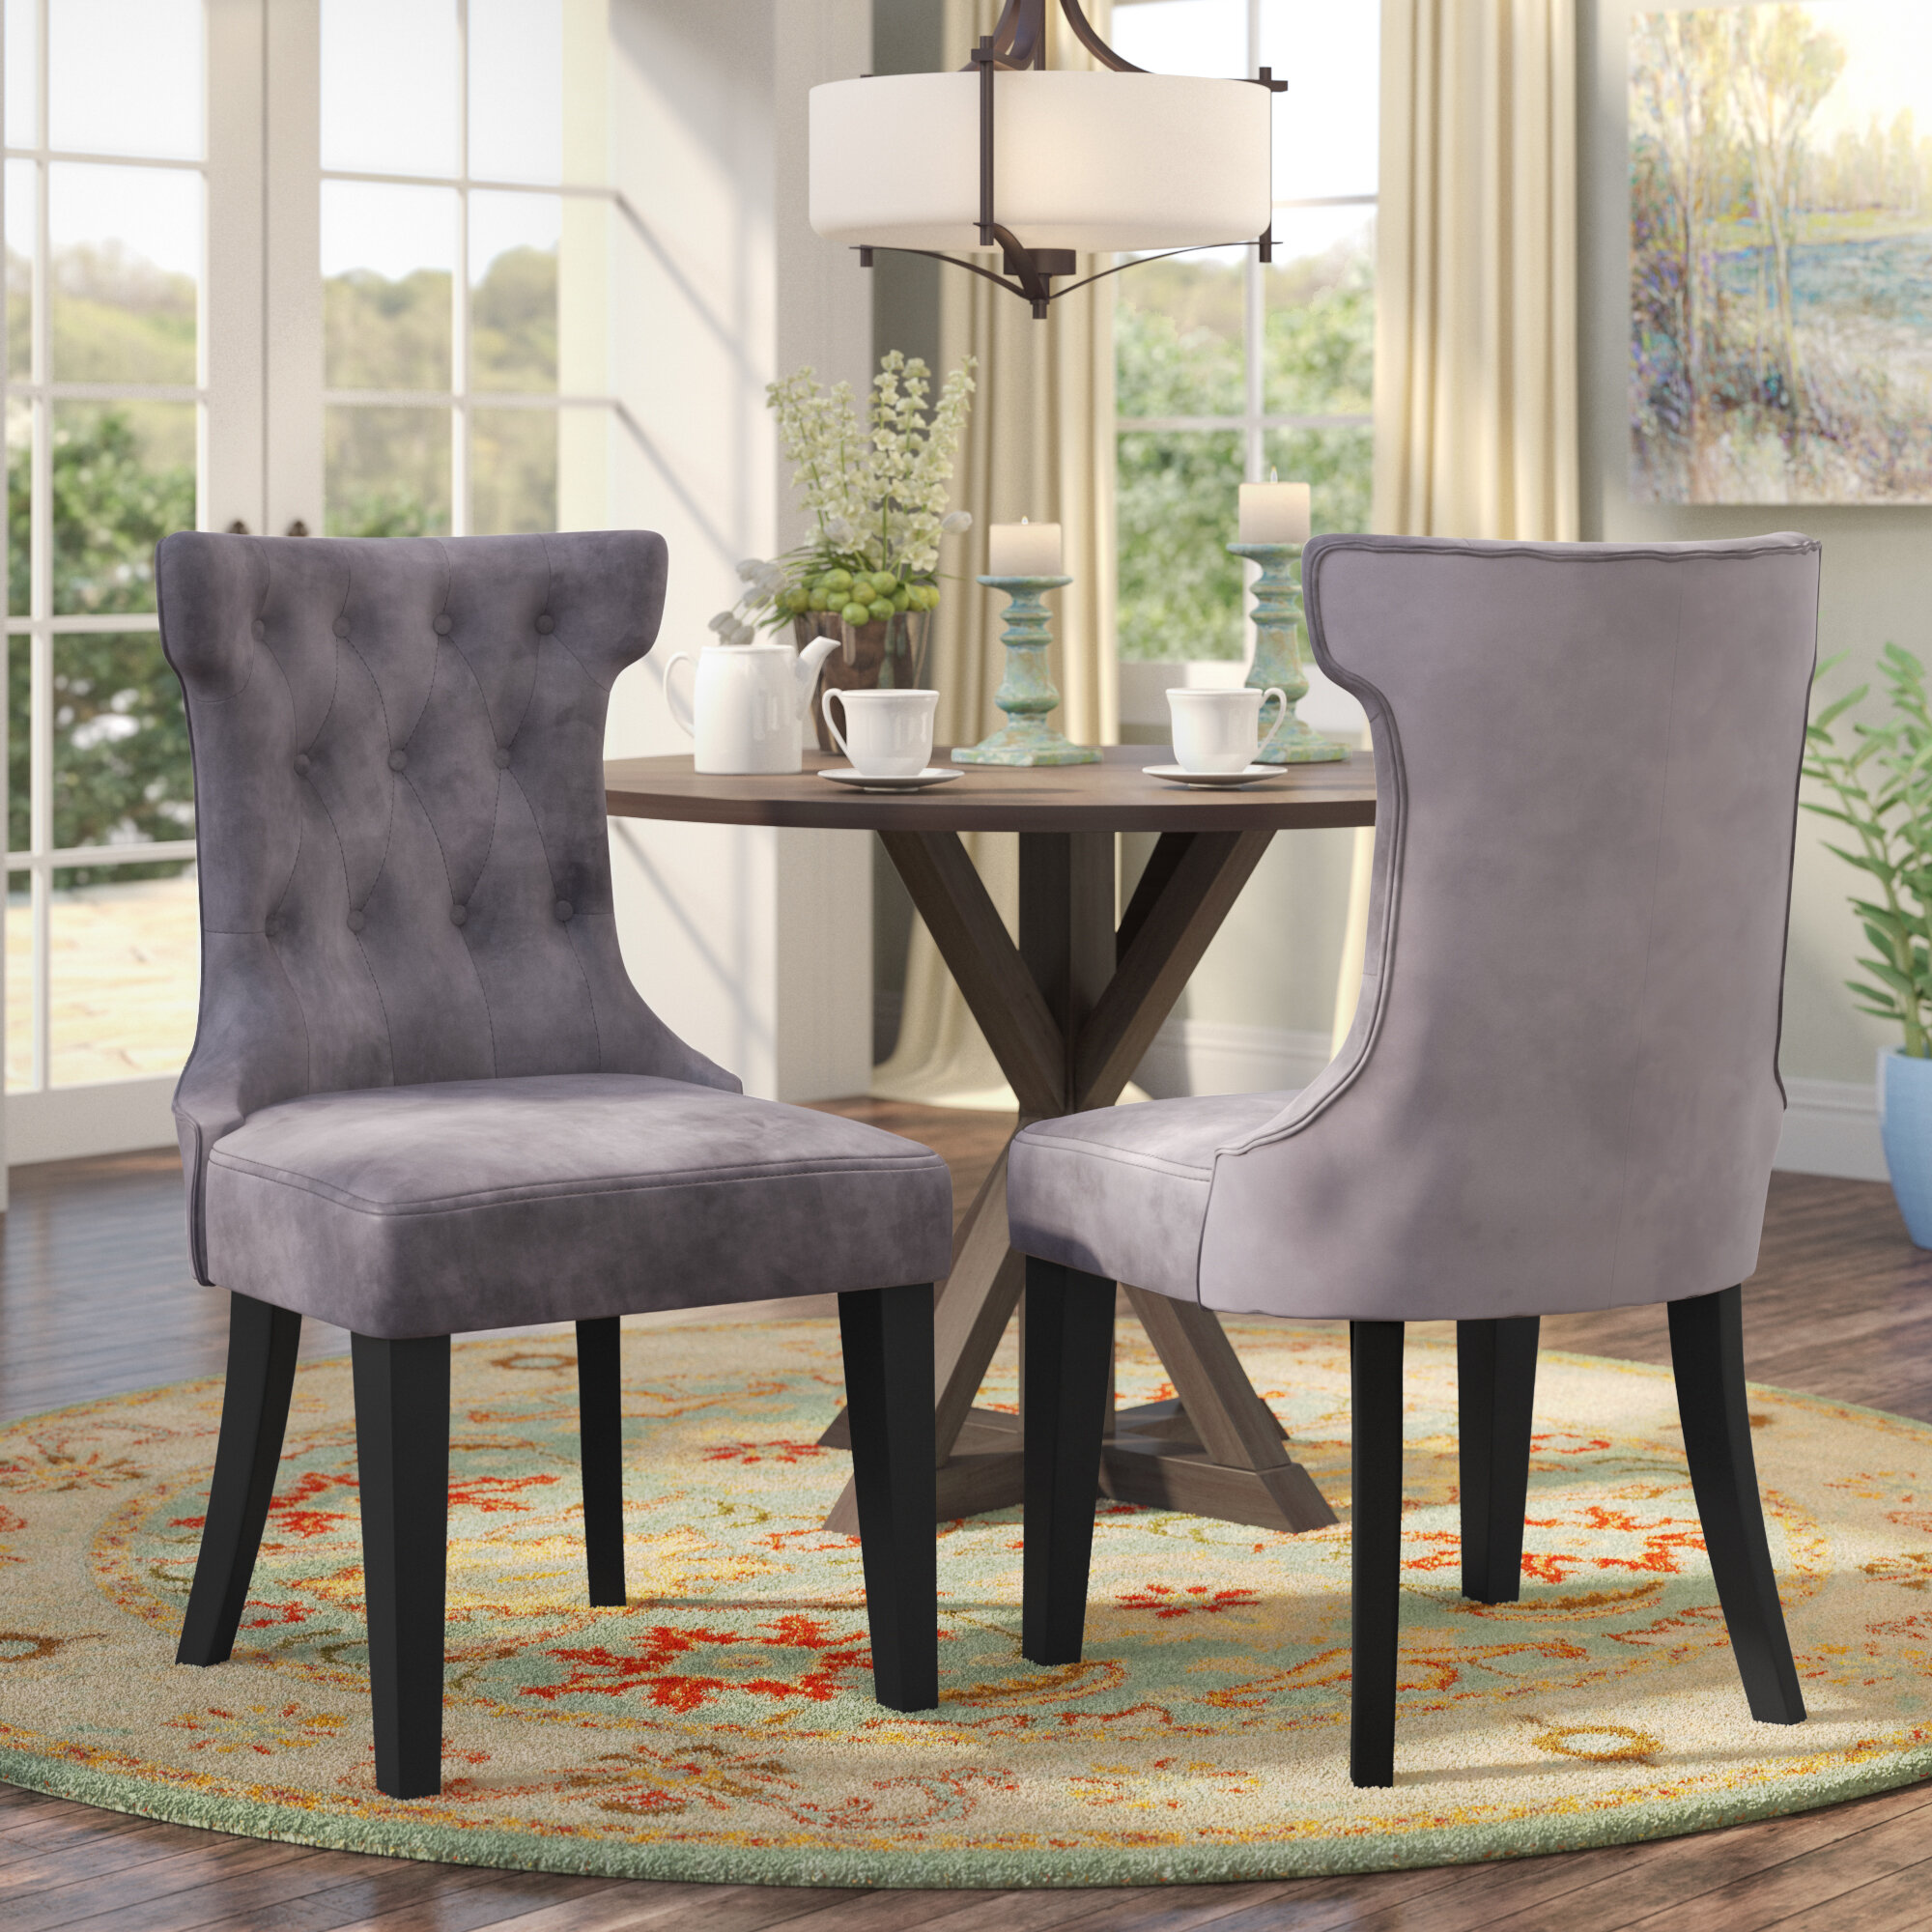 Scituate Tufted Upholstered Side Chair